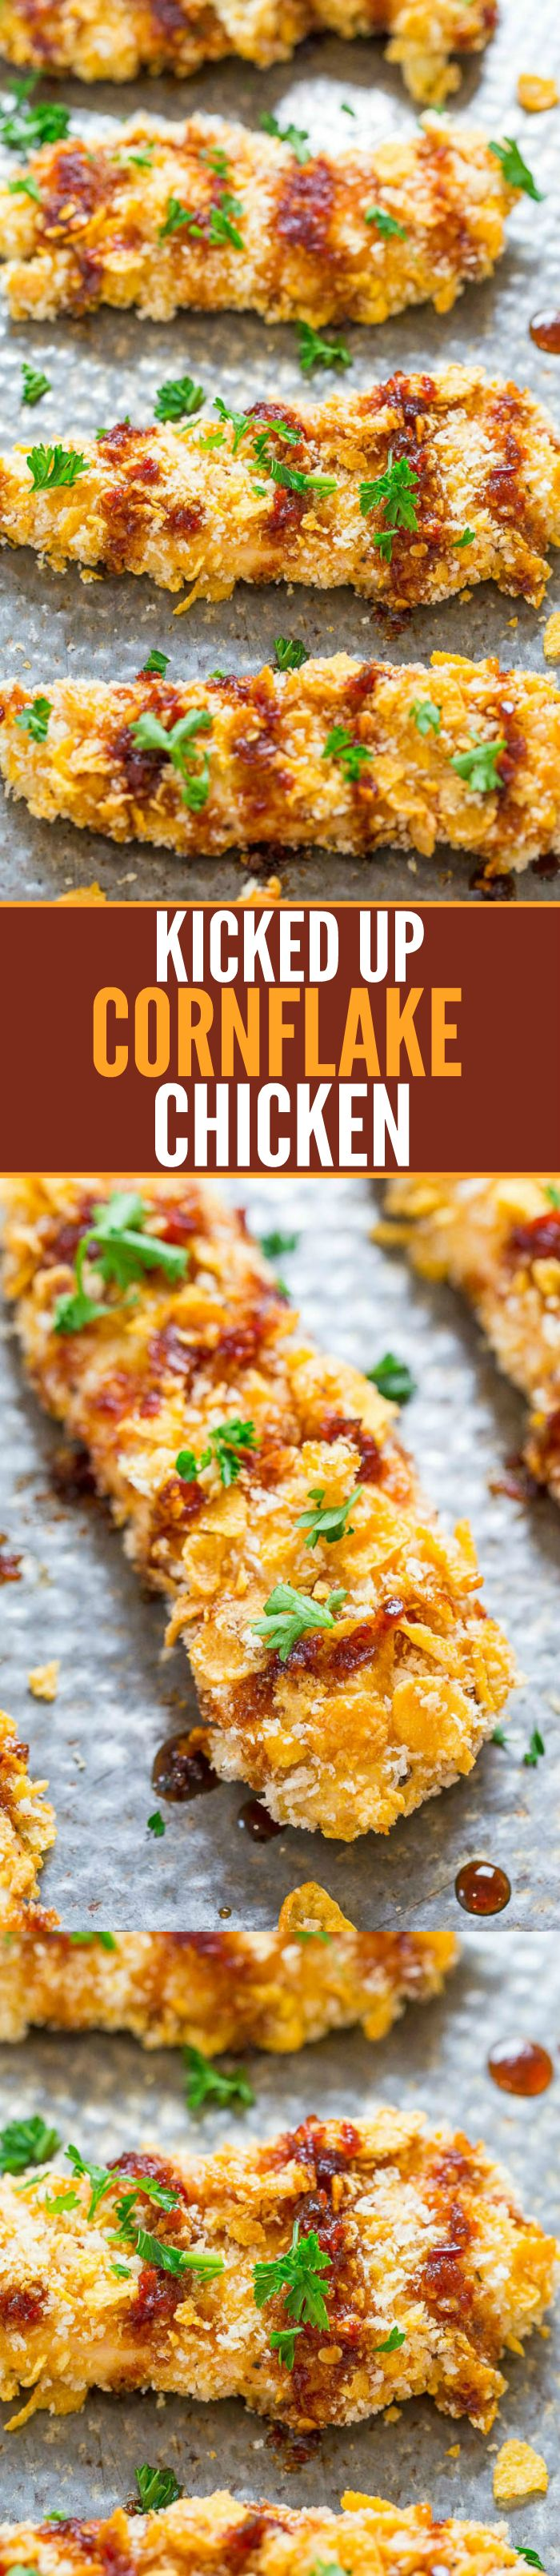 Kicked Up Cornflake Chicken - EASY, ready in 30 minutes, so CRISPY on the outside and tender and juicy inside!! The sauce has the perfect amount of KICK to keep you going back for more!!